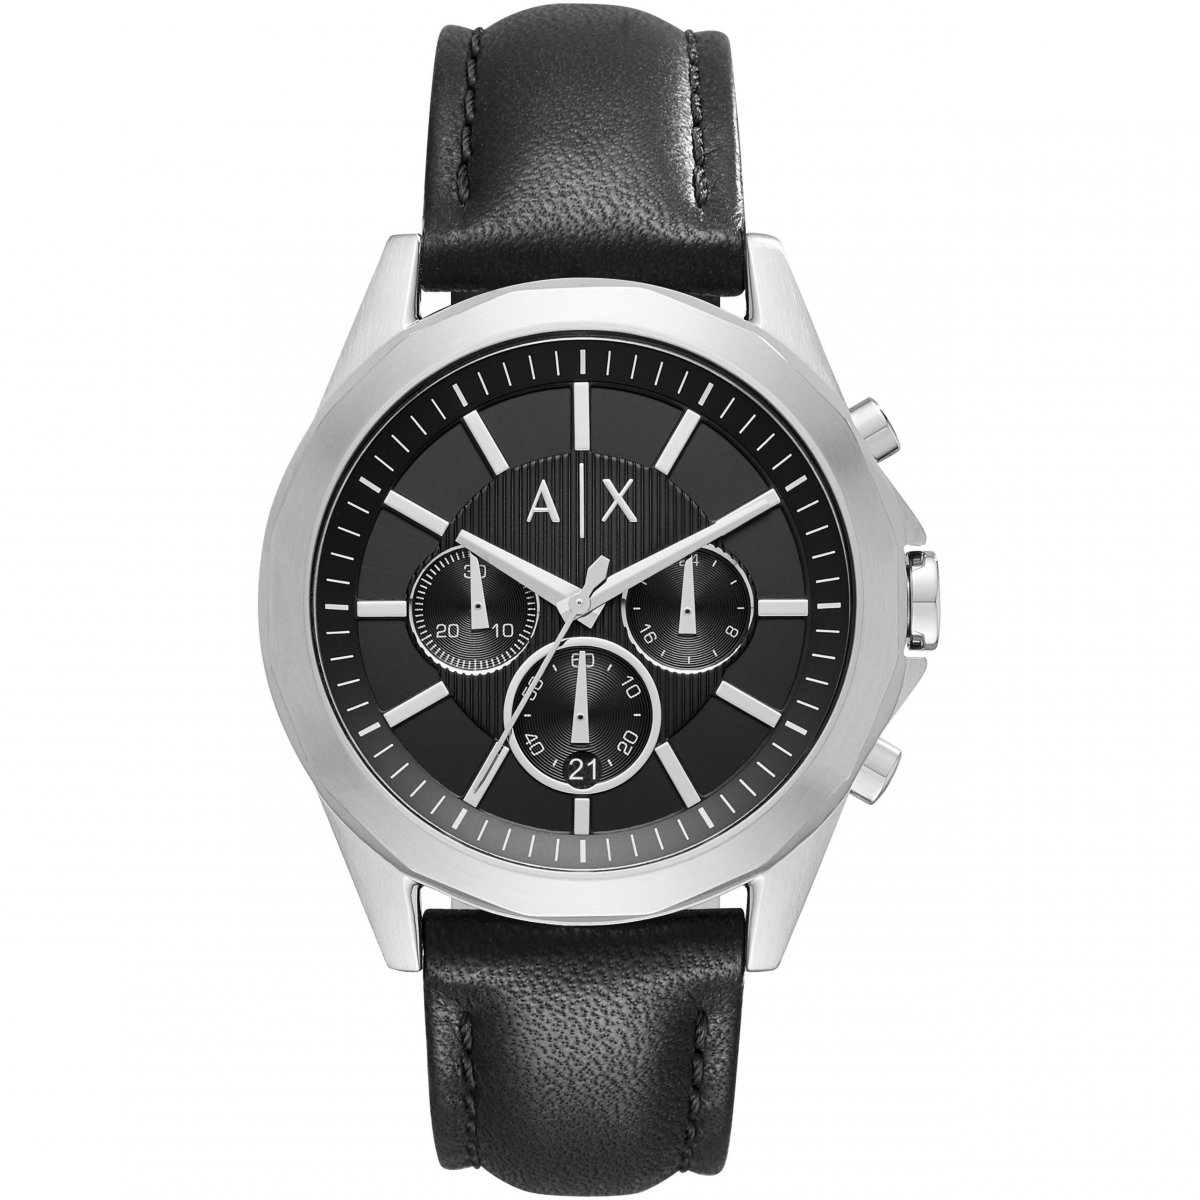 Hodinky ARMANI EXCHANGE Black Dial Black Leather Strap